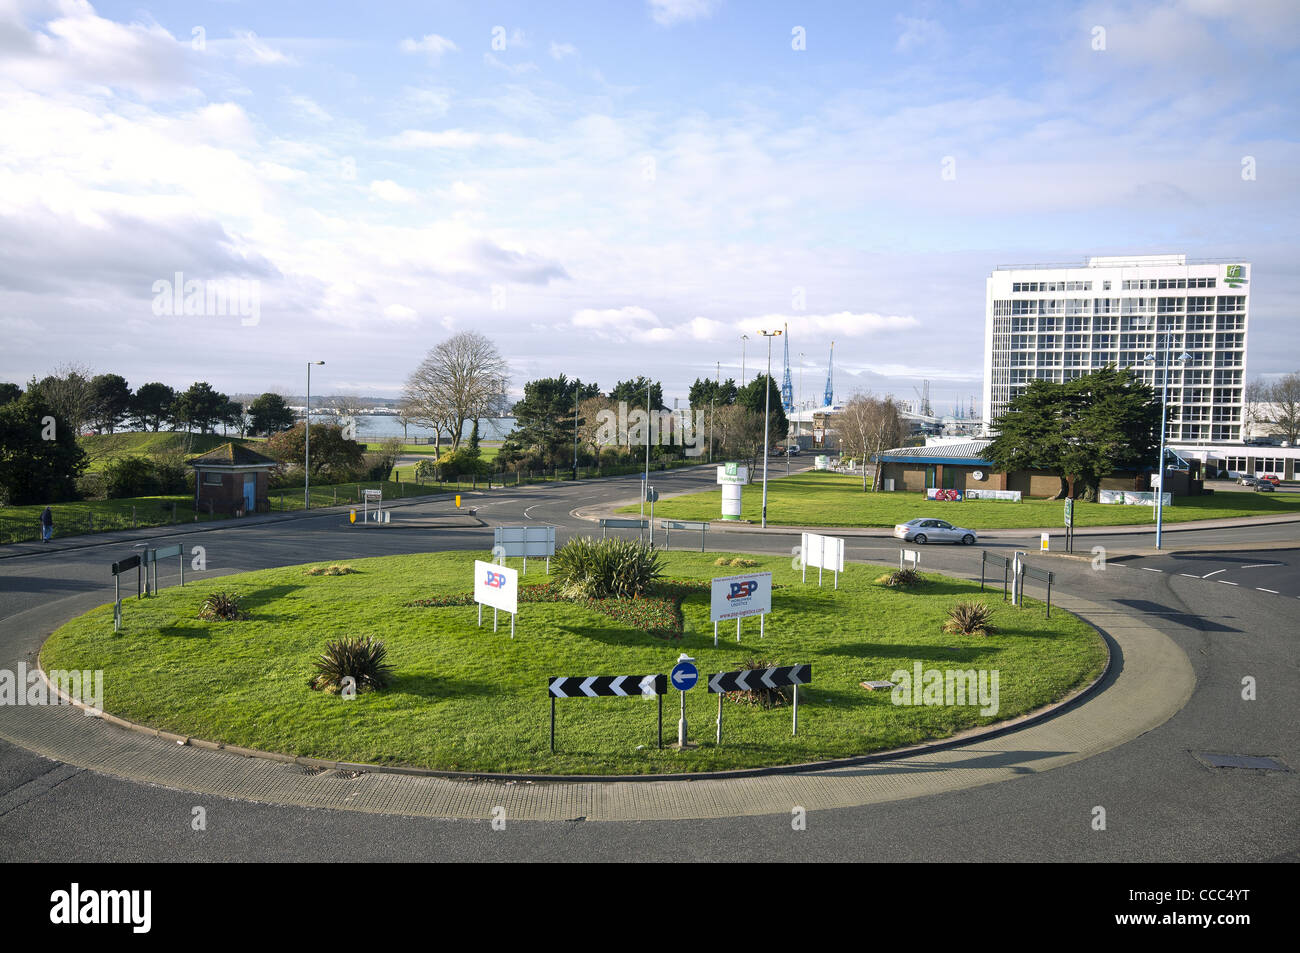 The view towards Dock Gate 8 with Mayflower Park on the left and the Holiday Inn on the right in Southampton, Hampshire, - Stock Image